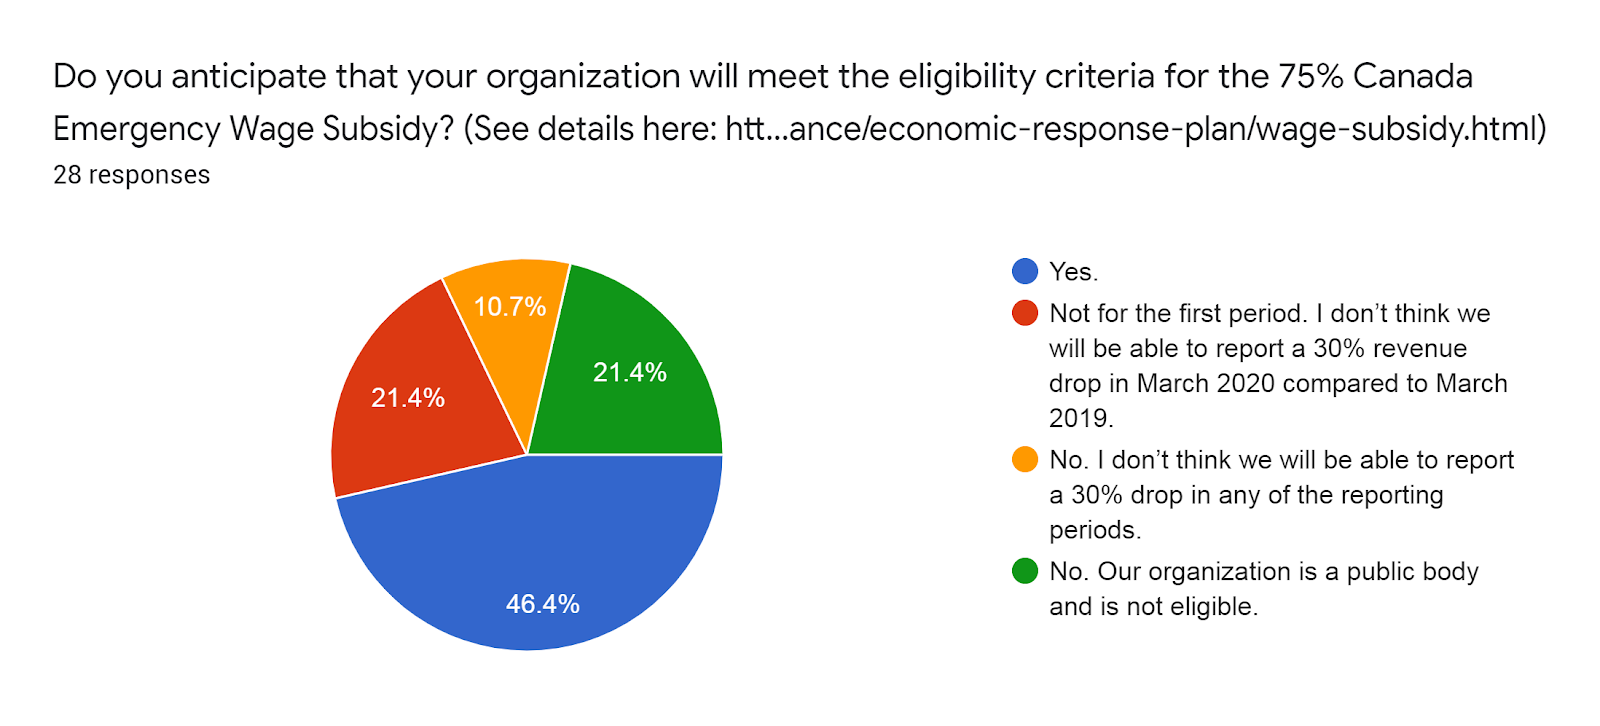 Forms response chart. Question title: Do you anticipate that your organization will meet the eligibility criteria for the 75% Canada Emergency Wage Subsidy? (See details here: https://www.canada.ca/en/department-finance/economic-response-plan/wage-subsidy.html). Number of responses: 28 responses.